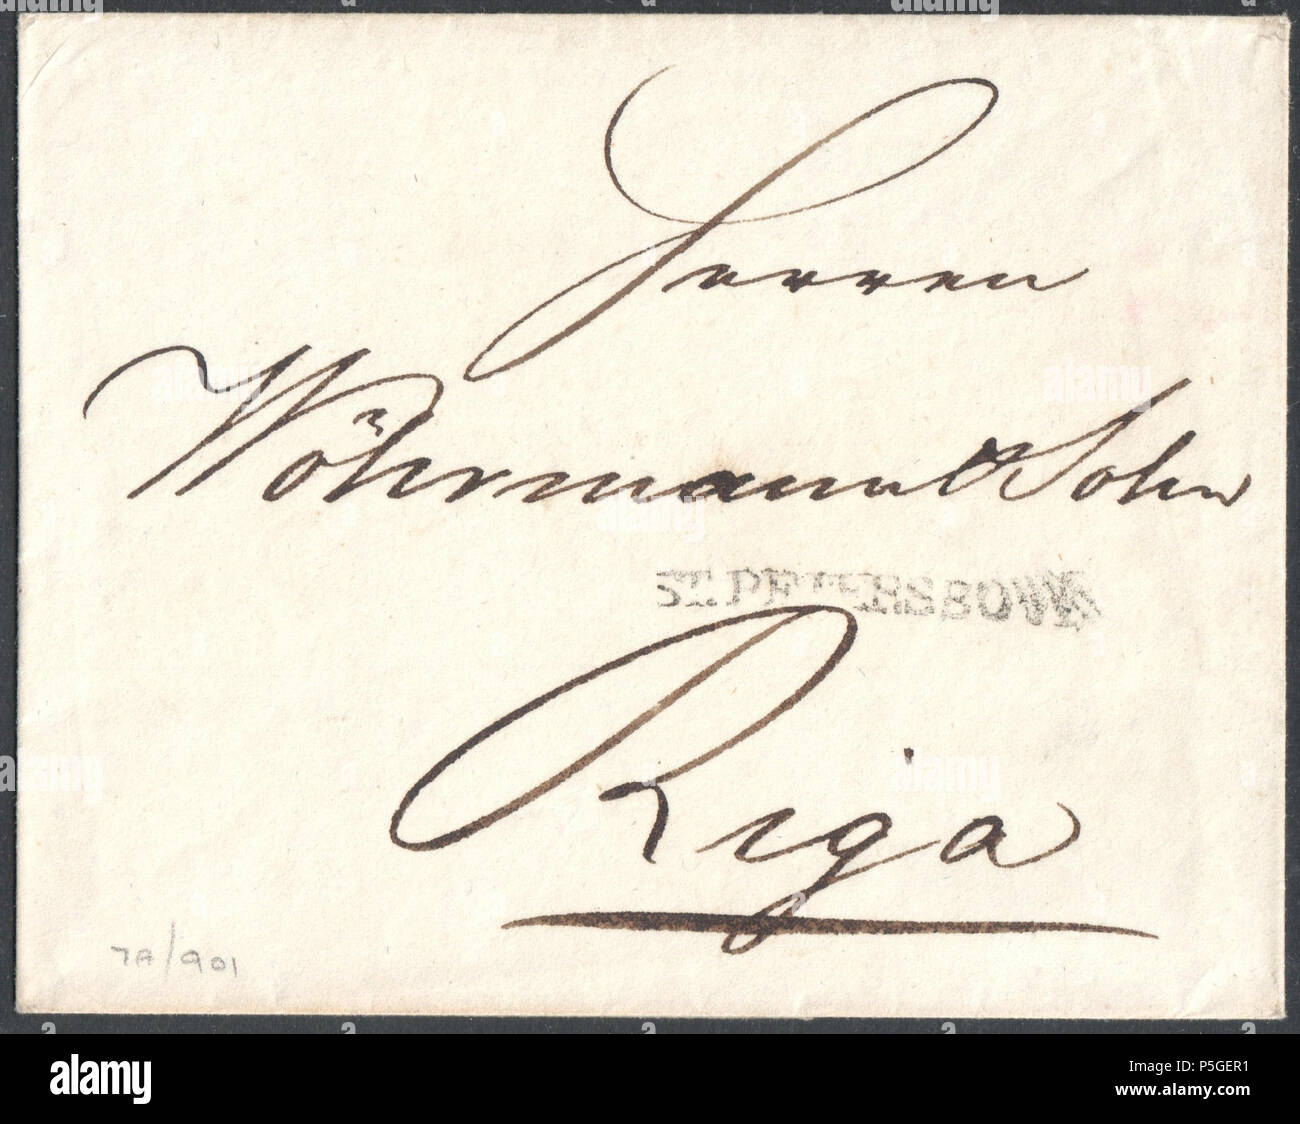 N/A. English: 1807 entire to Riga bearing straight line ST.PETERSBOURG handstamp, backside manuscript '16K'. On November 14 1783, the postal rates in the Russian Empire were made uniform by decree. The rates were valid until 1830. Letters weighing 1 lot, (12.7974g / 0.451 oz), were charged per 100 versts distance (the verst was 1.0668 km / 0.6629 mile): Up to 100 versts 6 kopeks Between 100 and 1500 versts 2 kopeks per 100 versts Between 1500 and 3100 versts 1 kopek per 100 versts > 3100 versts 50 kopeks. This letter was assessed at 16 kopeks, which equals 6+5x2=600 versts or 640km / 398 miles - Stock Image